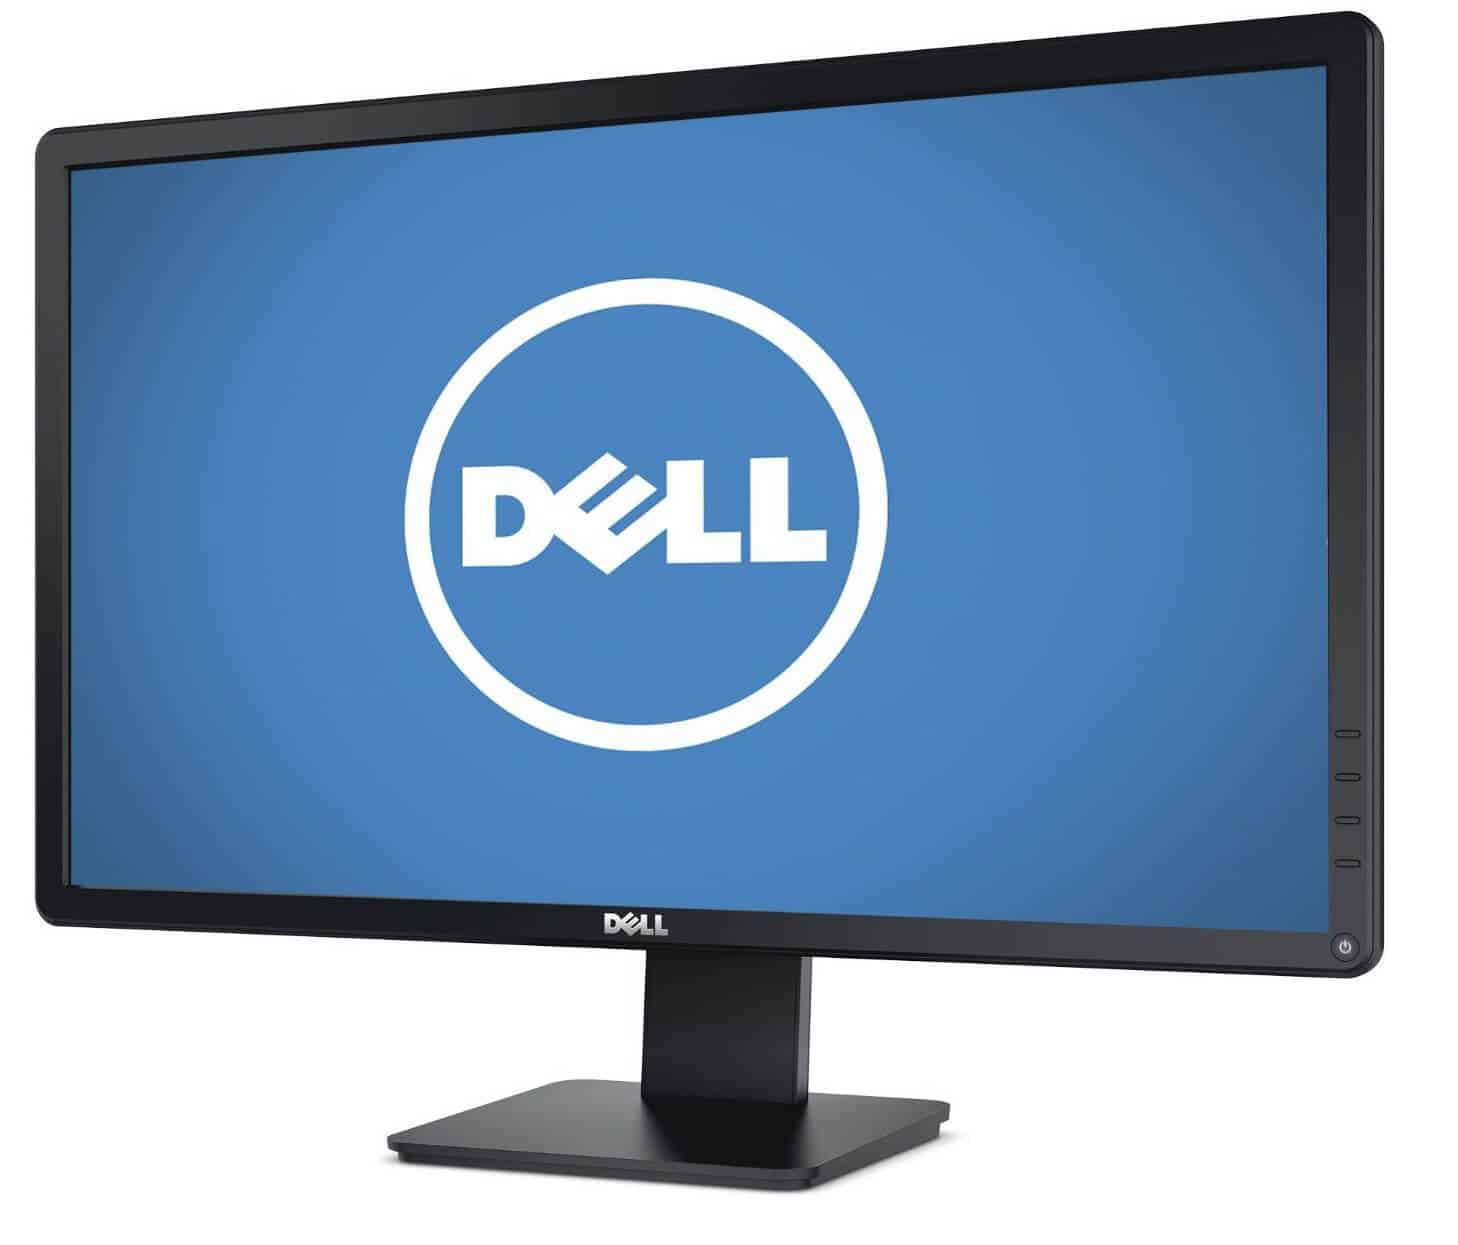 "The Best 23"" Monitor Of 2013: Dell S2340M"